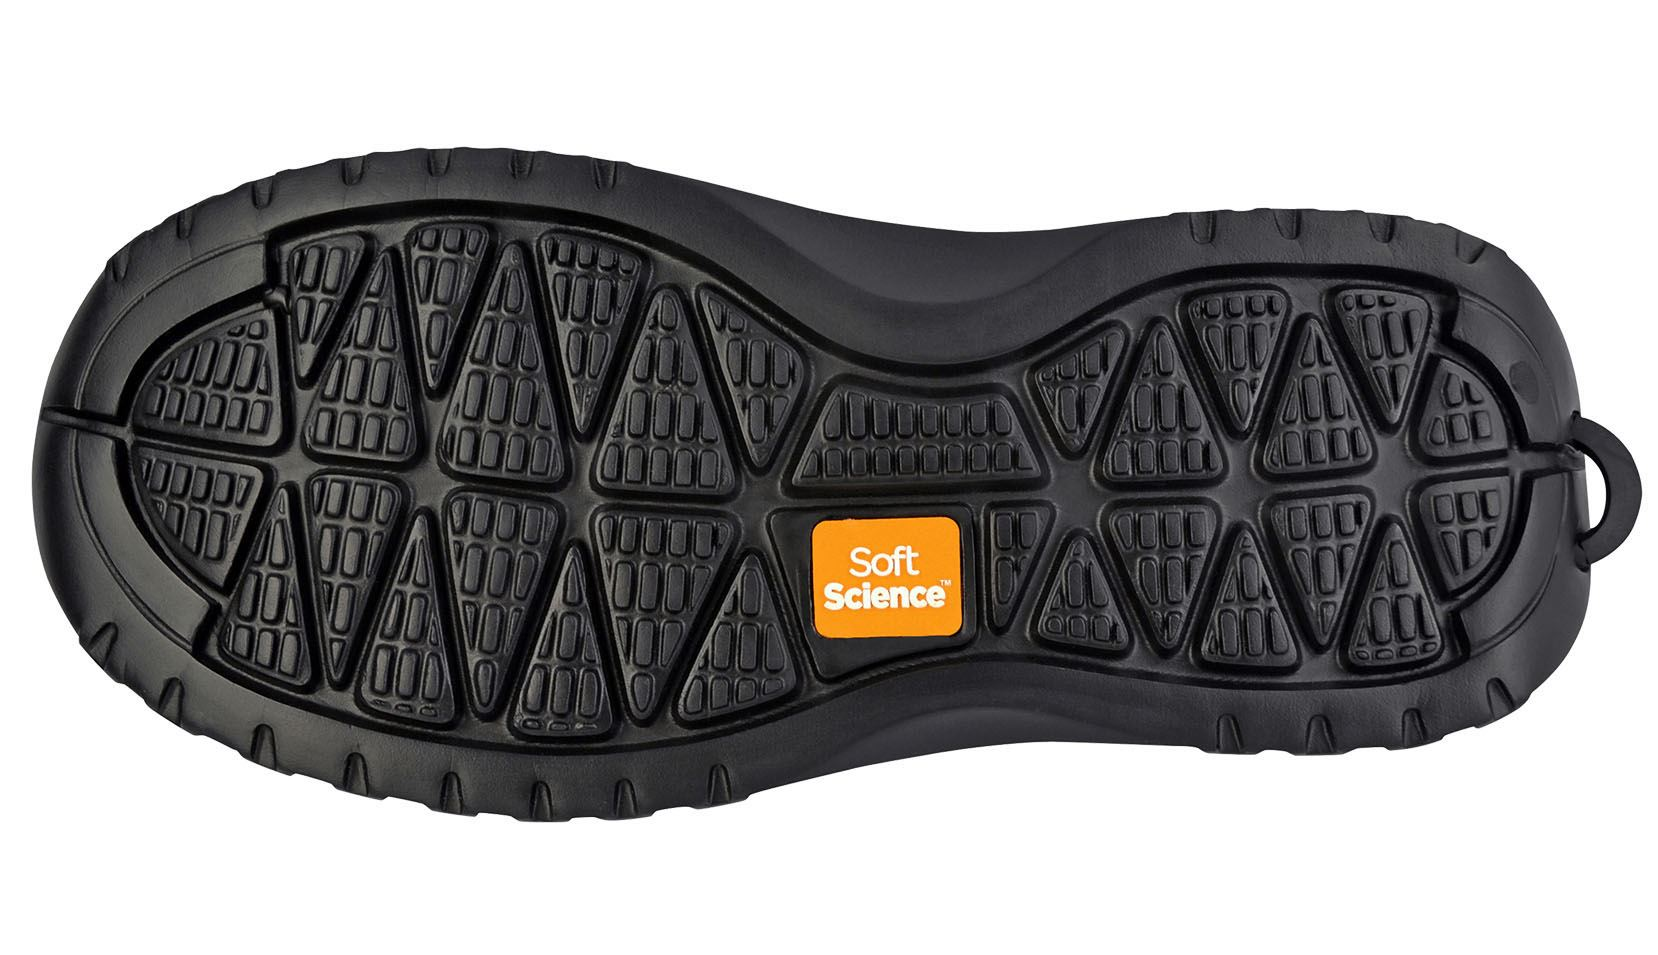 SCIENZA Soft Comfort Calzature ~ Terrain Ultra Lyte Boot